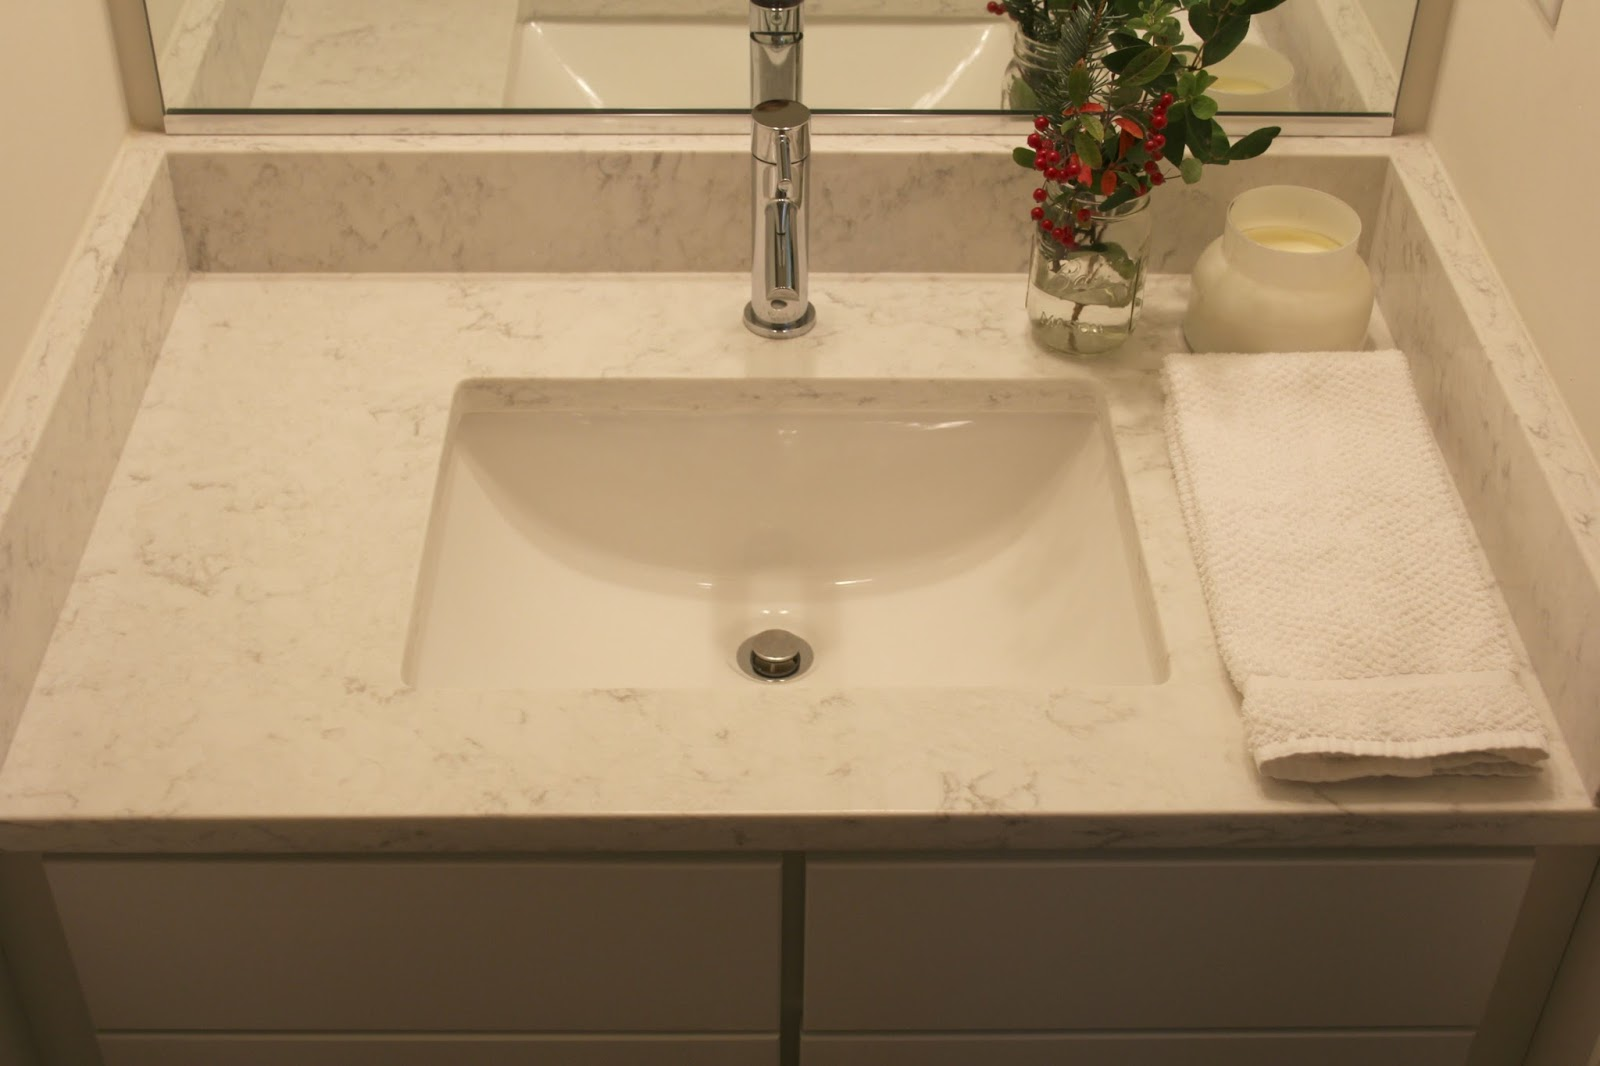 Room Vanity Countertops : Choosing the perfect quartz color for countertops hello